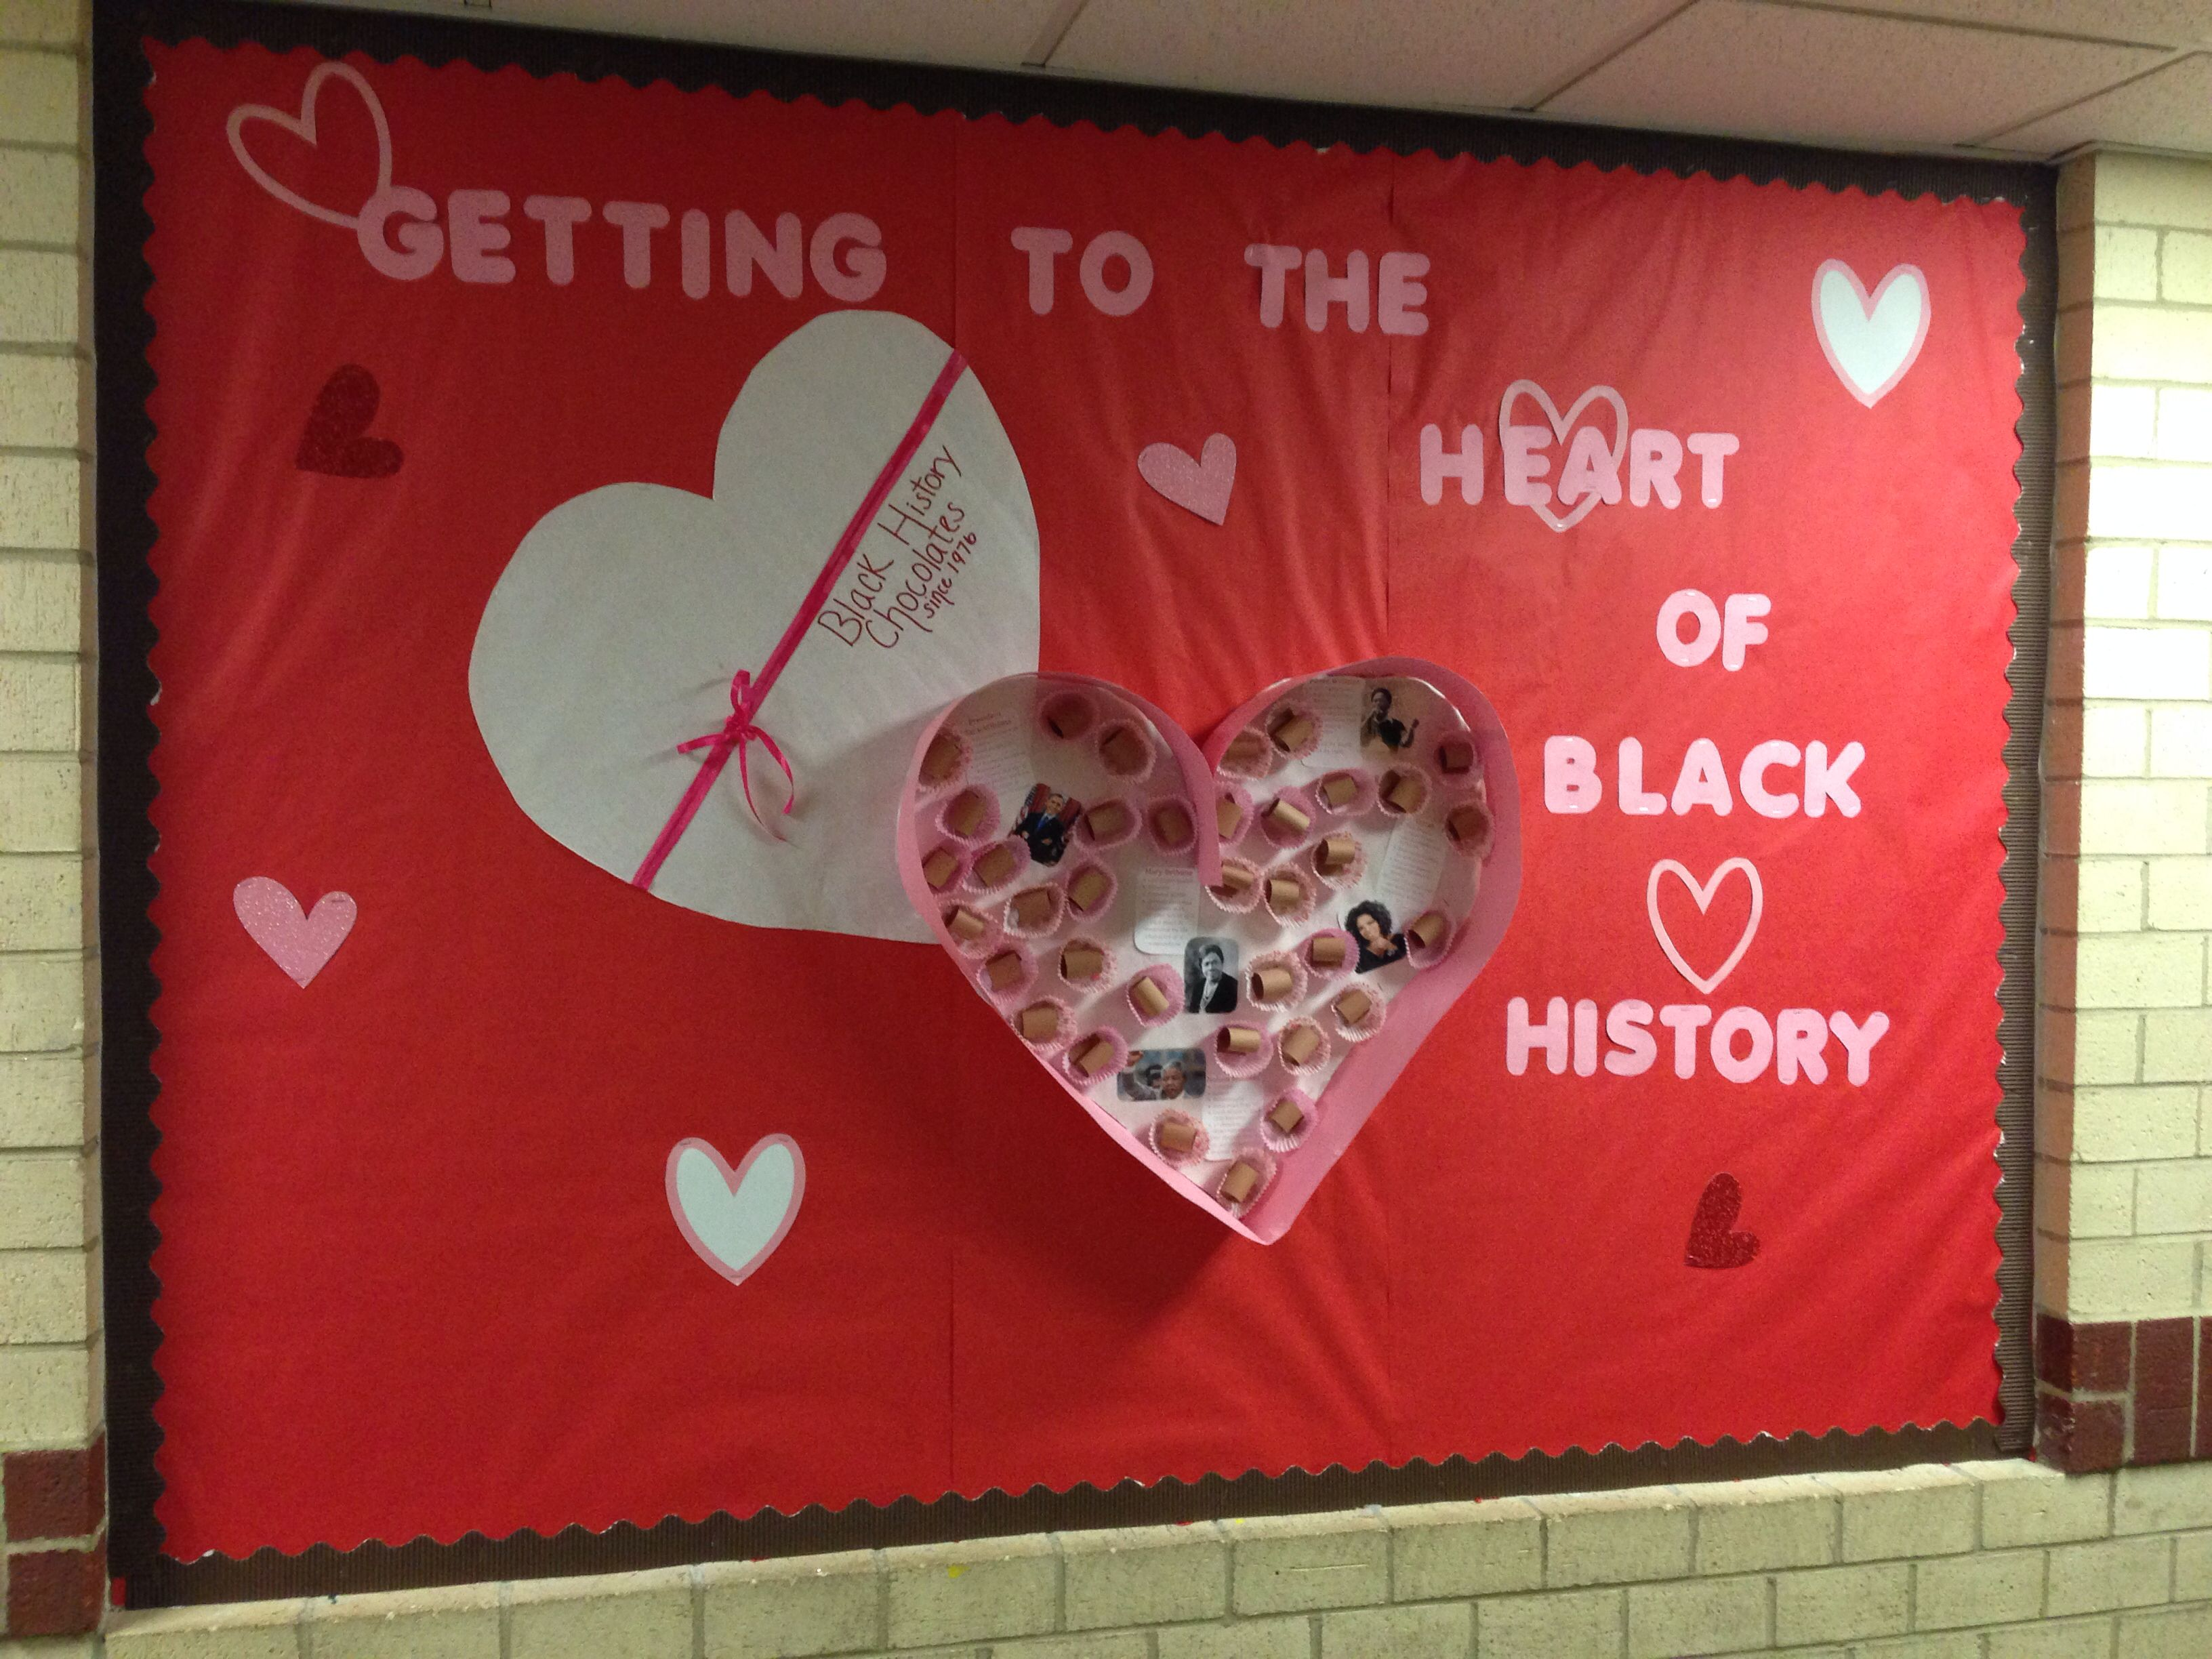 best ideas about history bulletin boards history feb 22nd valentine black history bulletin board check out our blog about celebrating black history